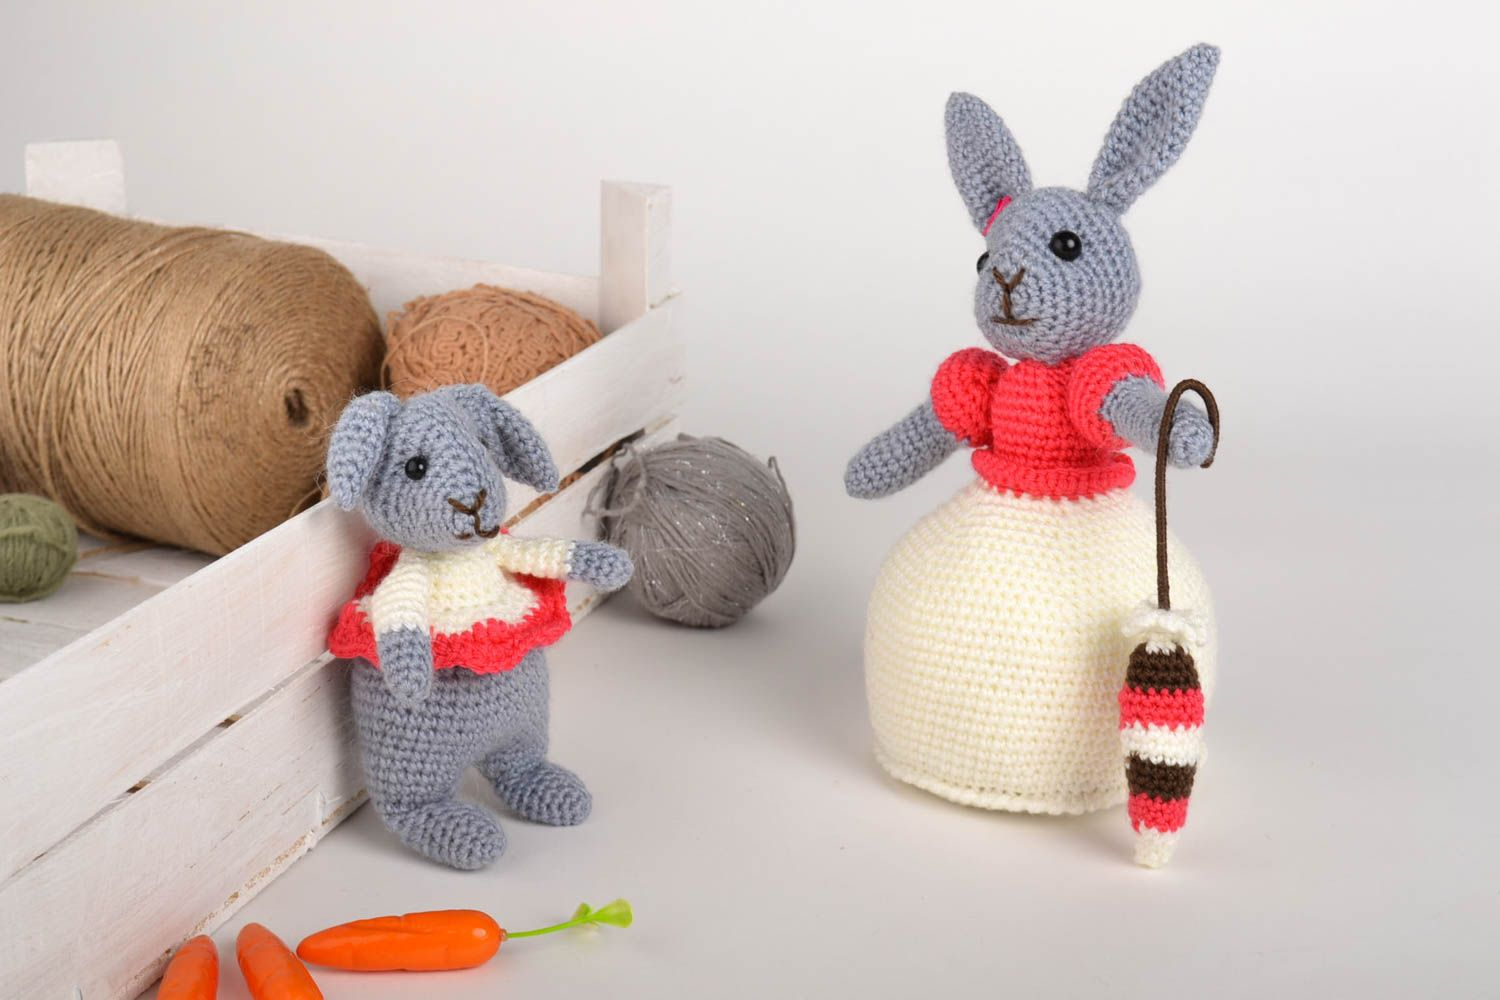 knitted toys Unusual handmade soft toys childrens toys 2 pieces knitted toy gifts for kids -